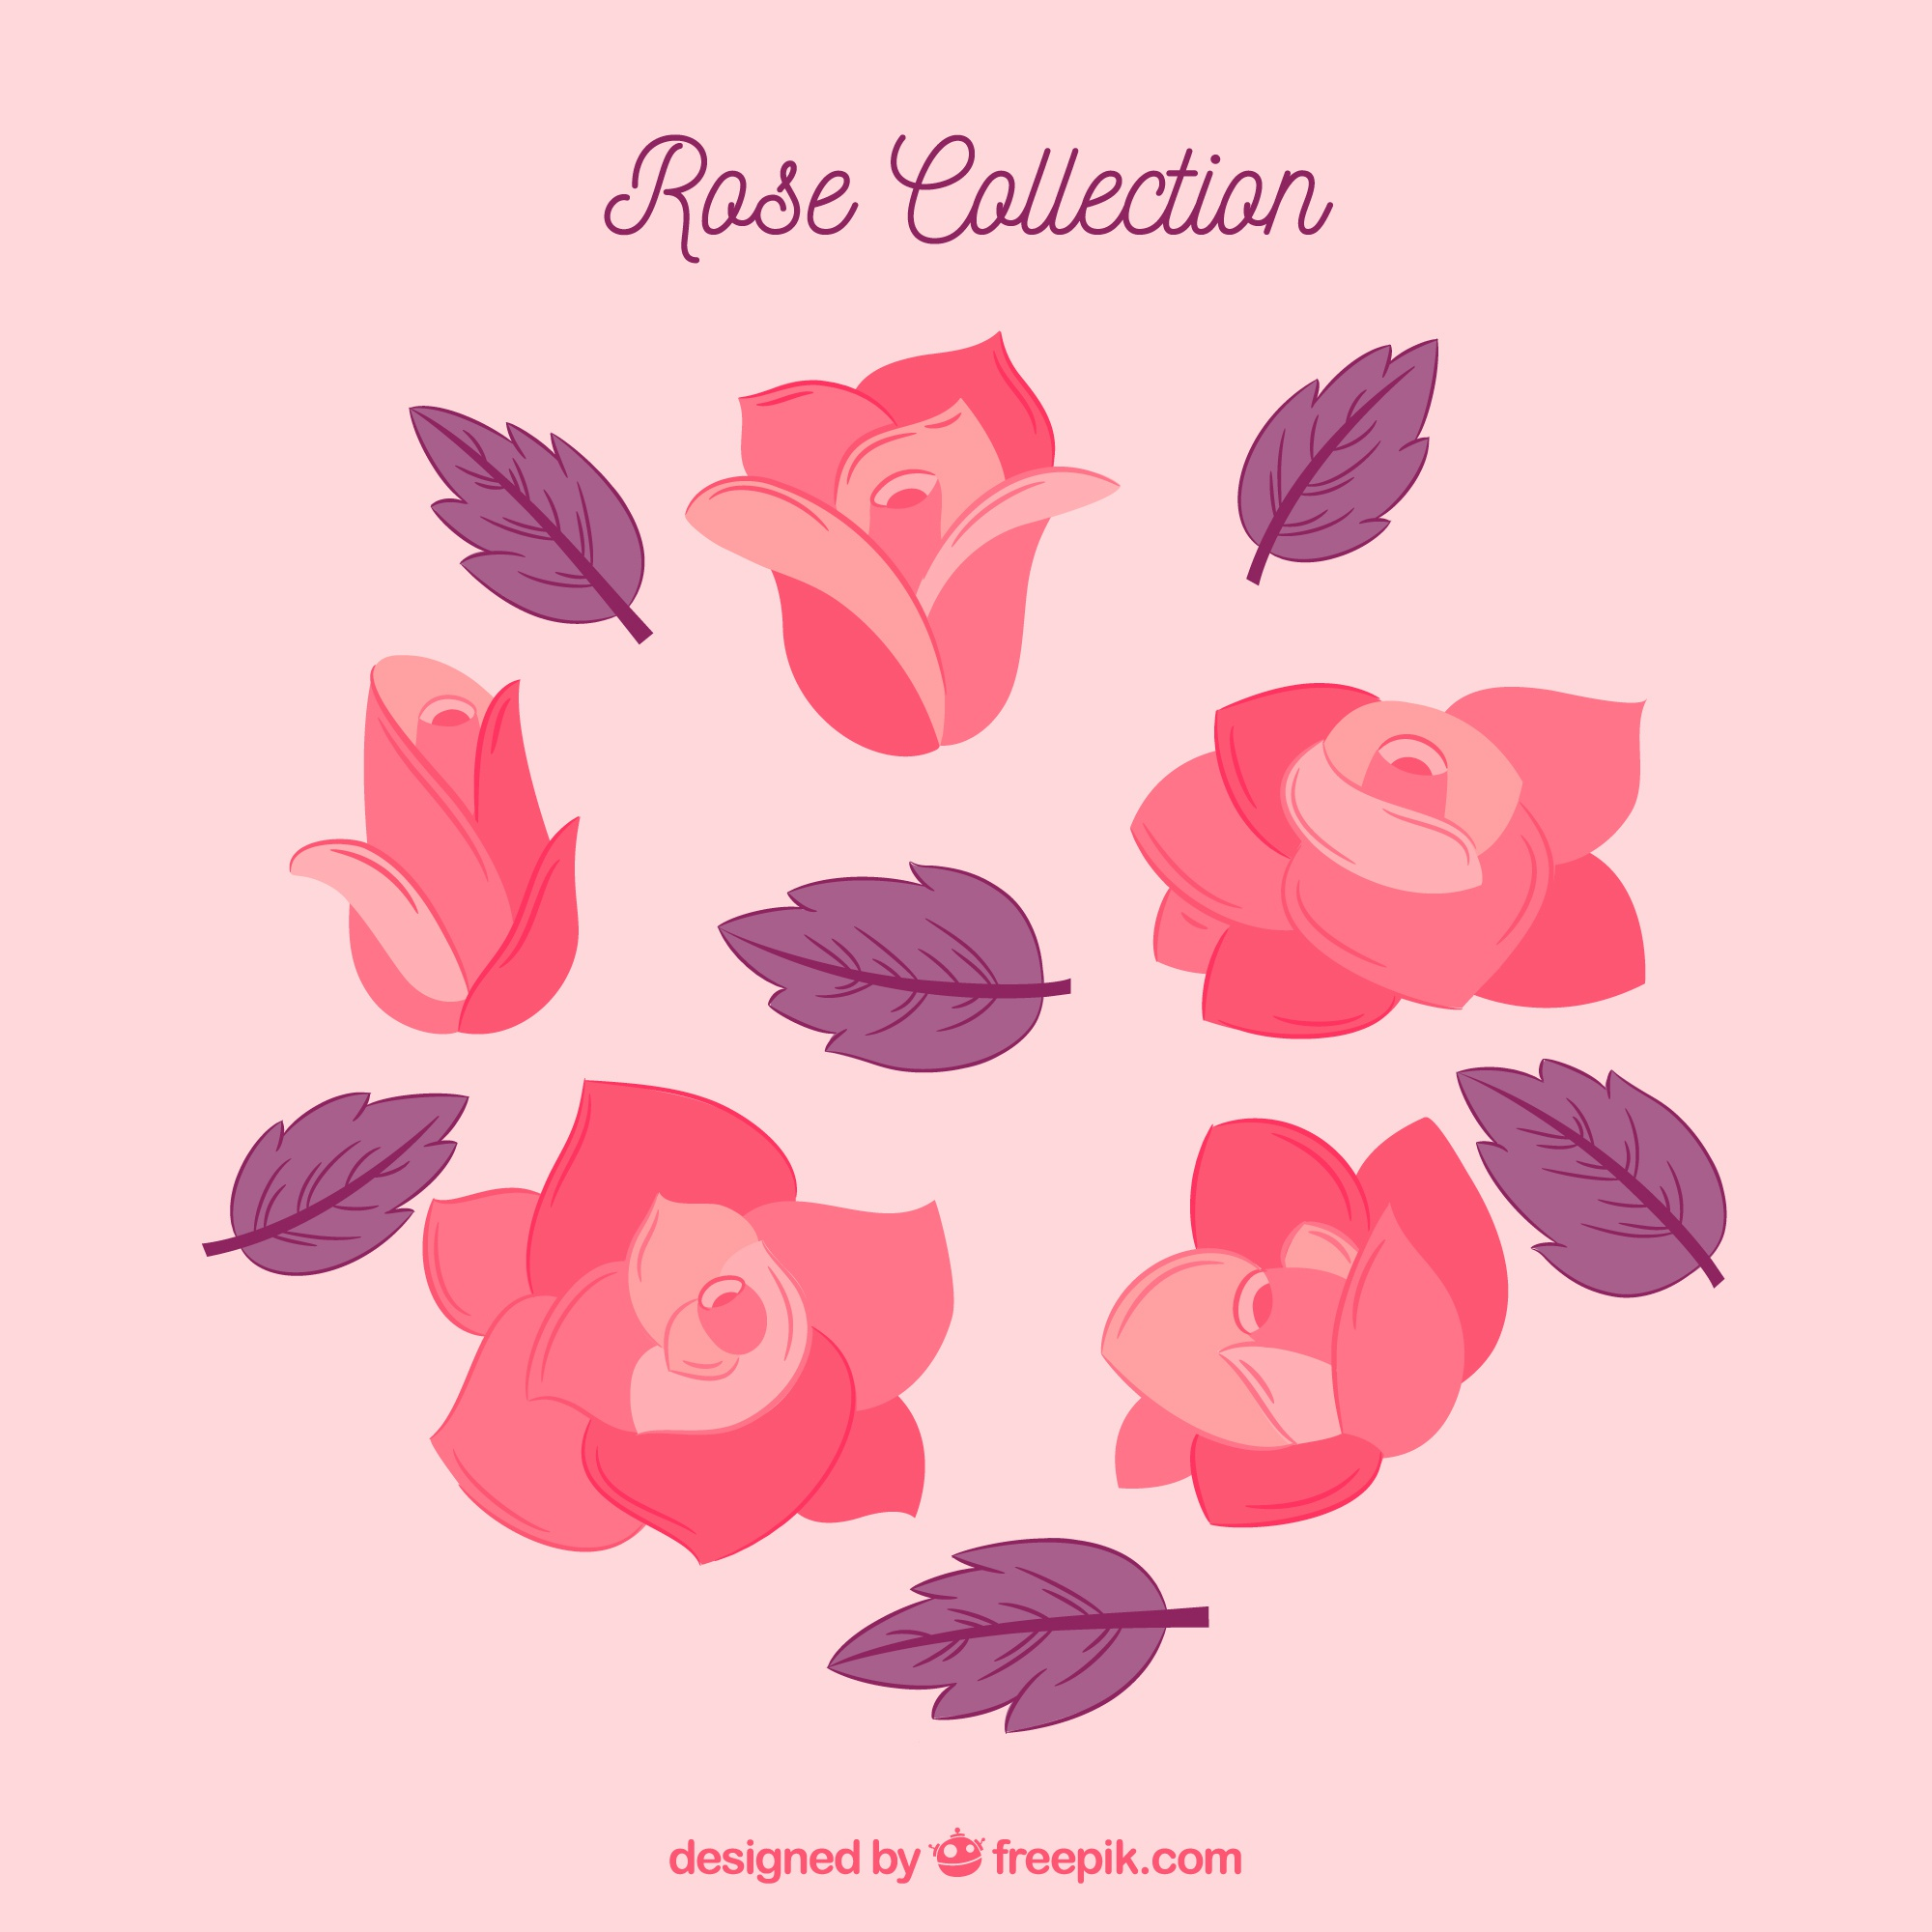 Collection of pink roses and purple leaves